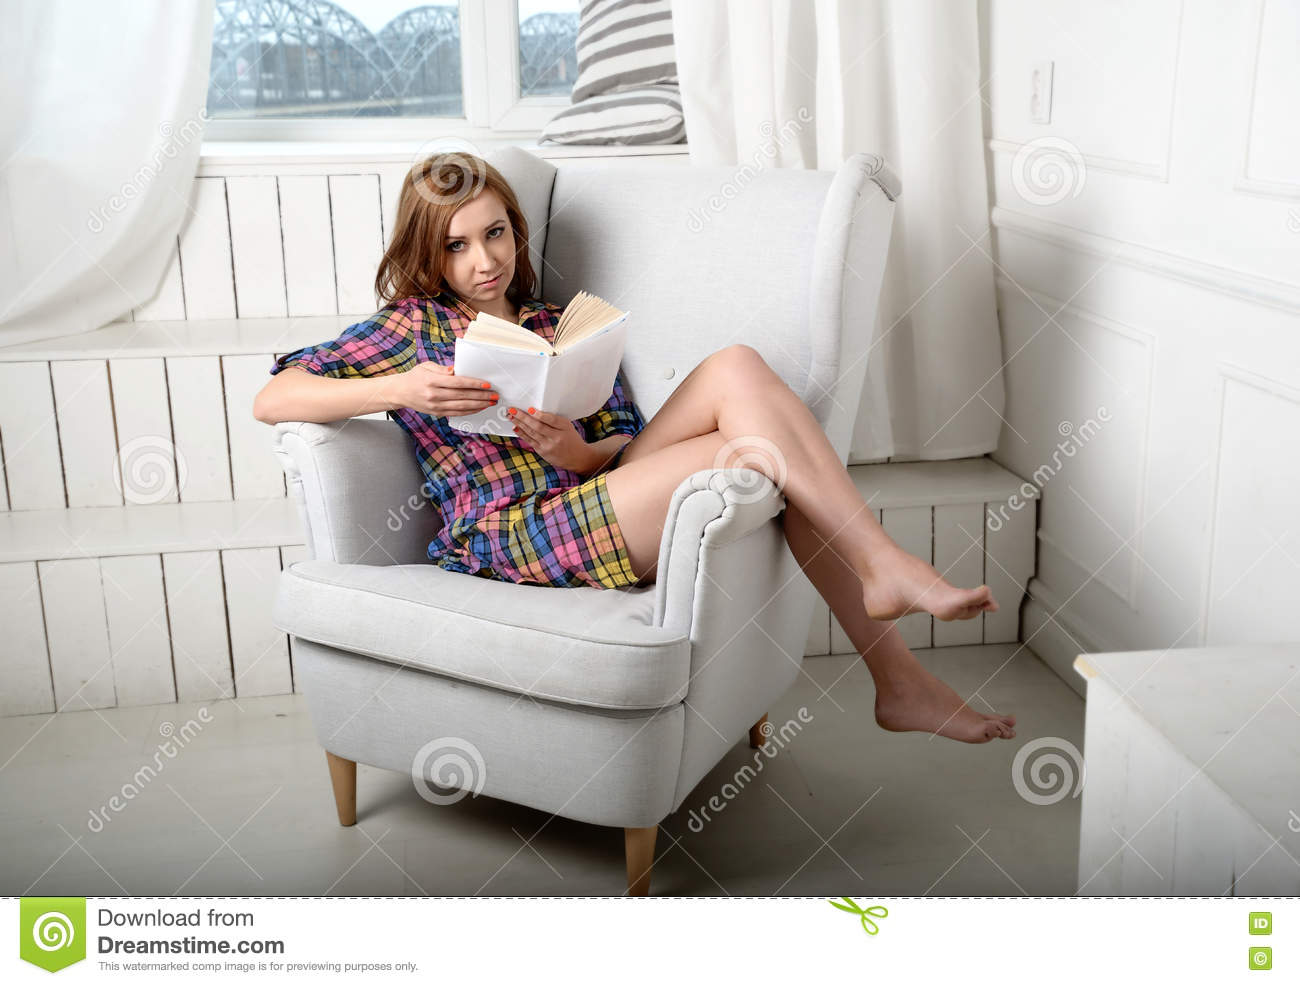 7f3949ee6445 Photo of a woman reading a book on the couch. Portrait photography.